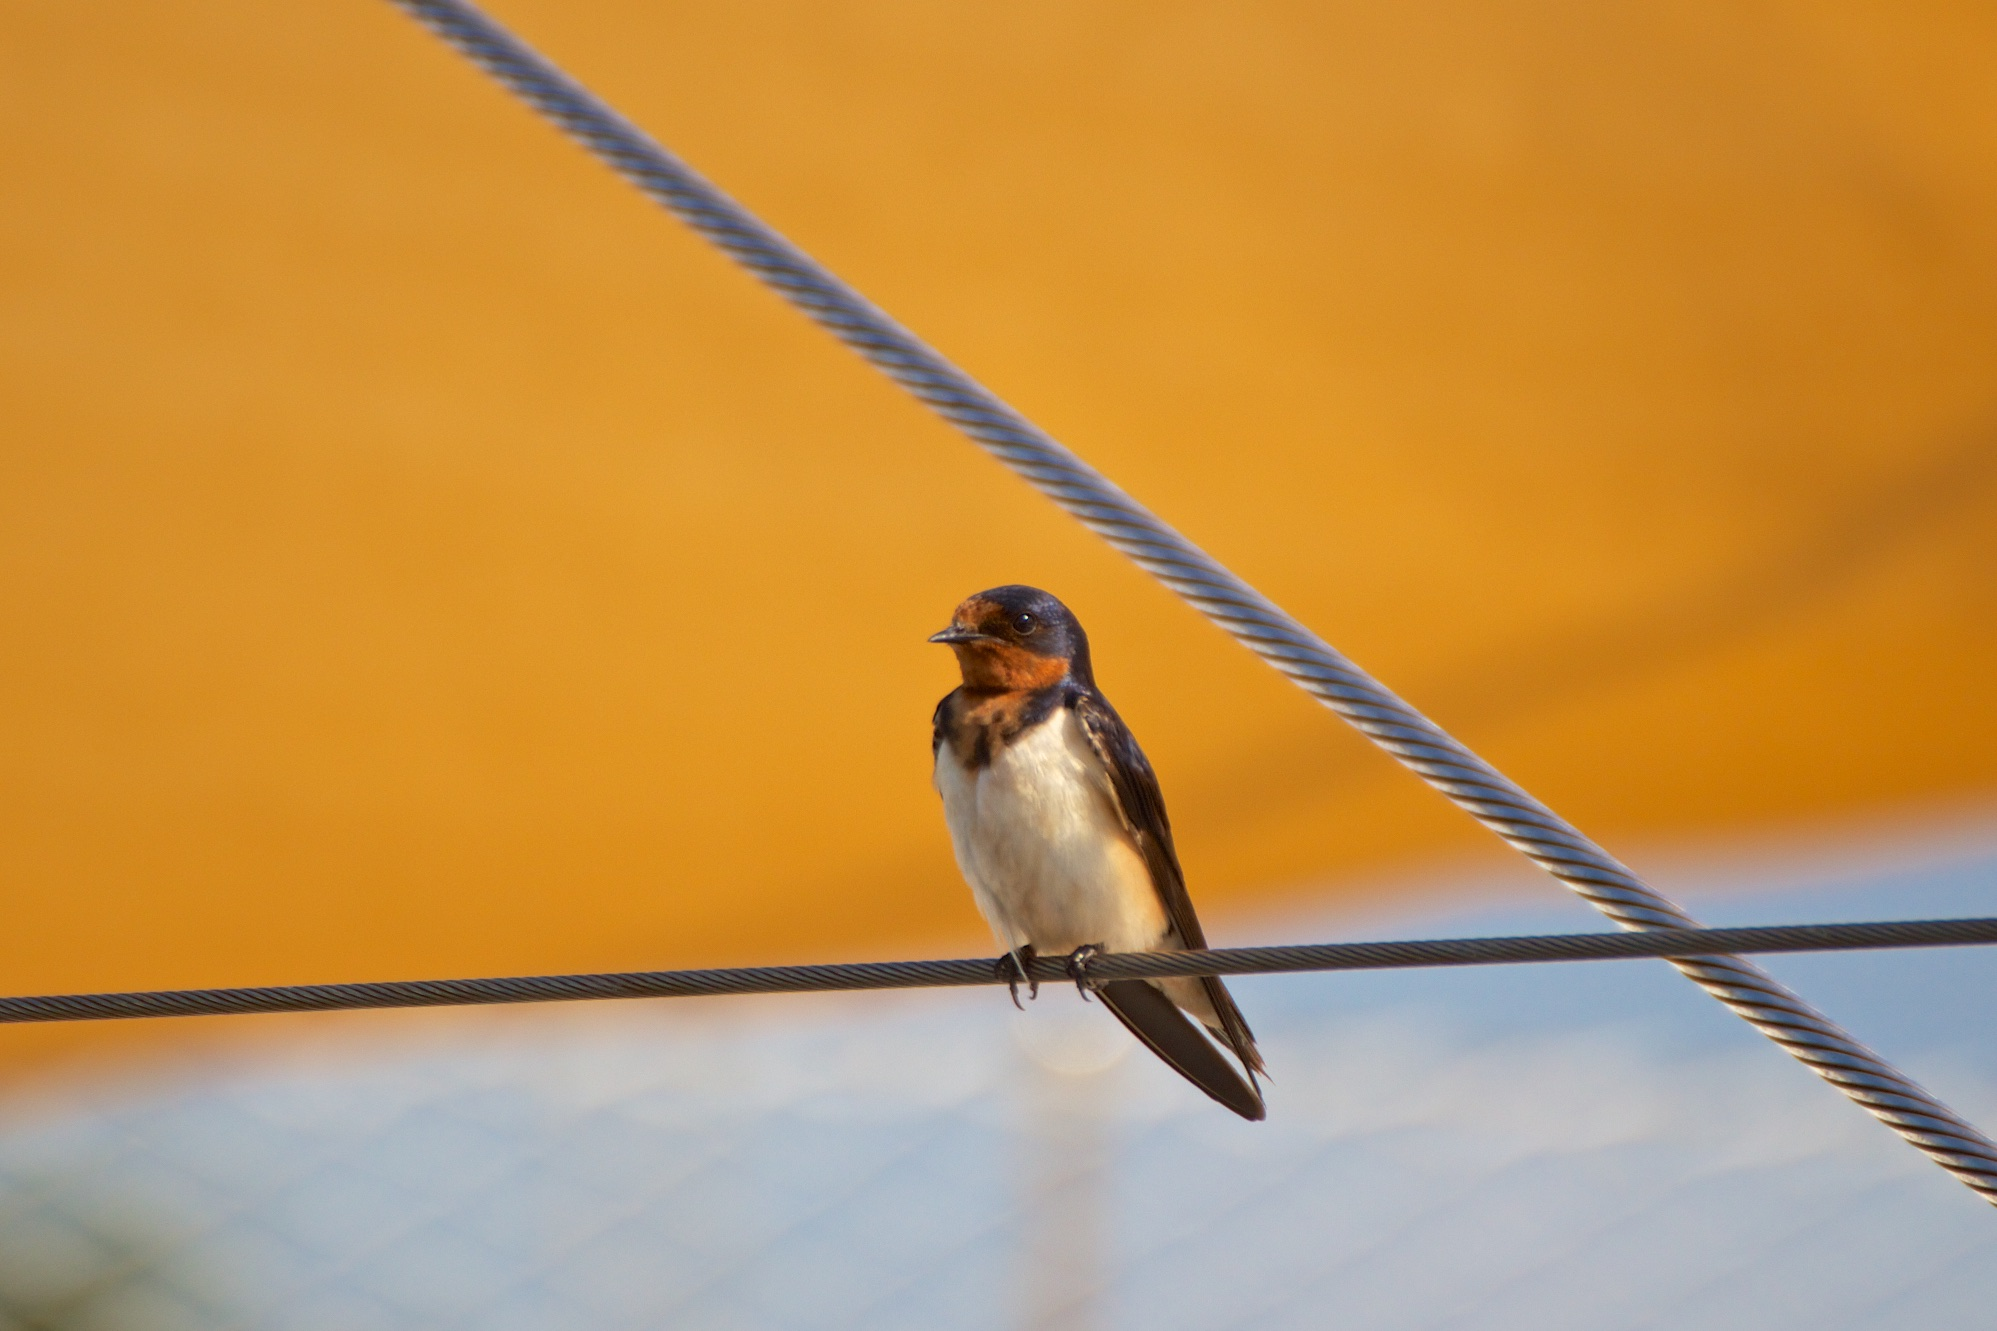 Bird on a Wire and Harnesses